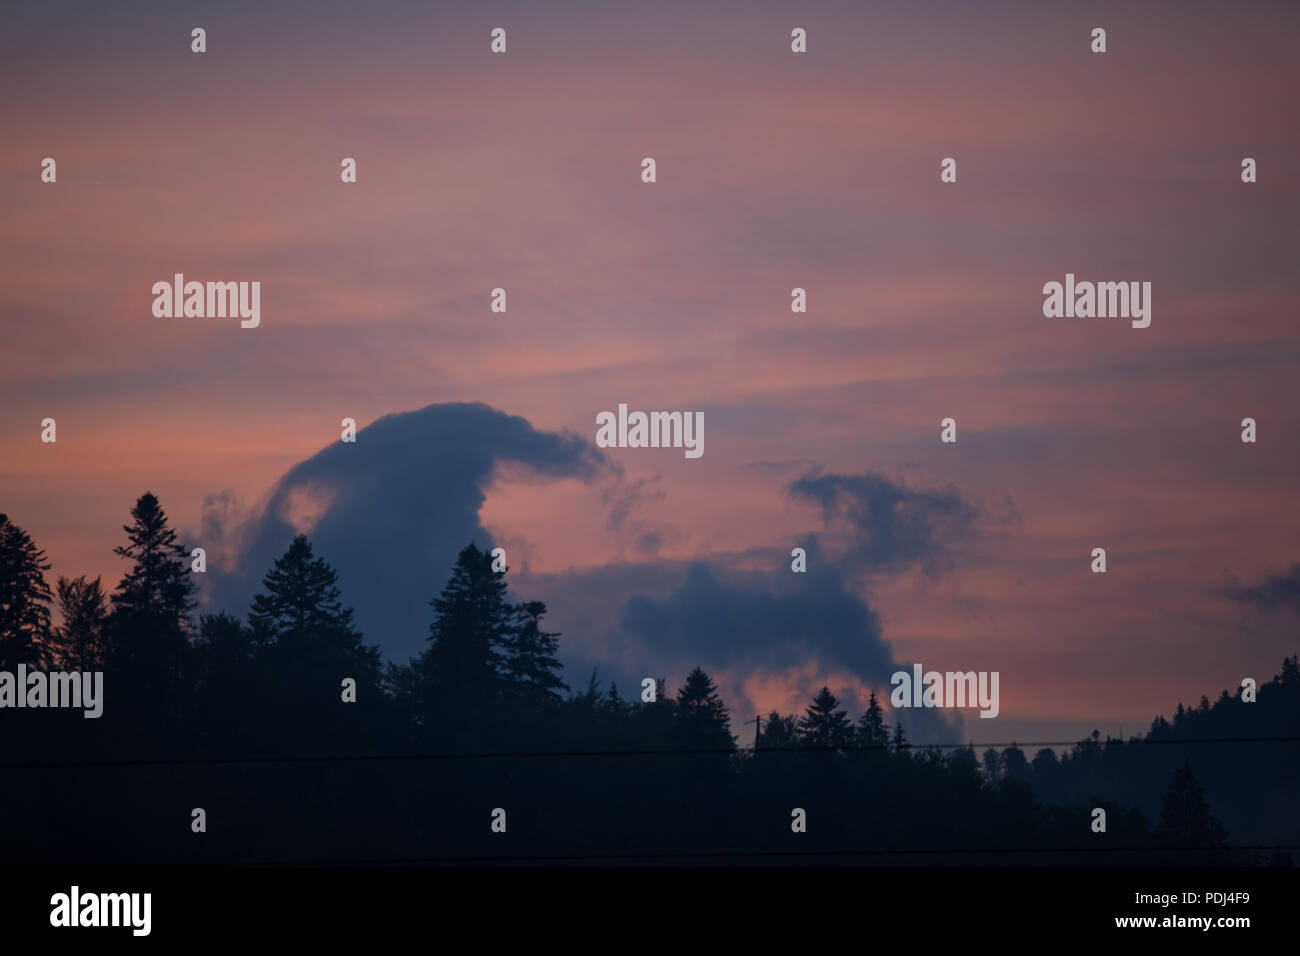 Predeal sunset, funny clouds - Stock Image